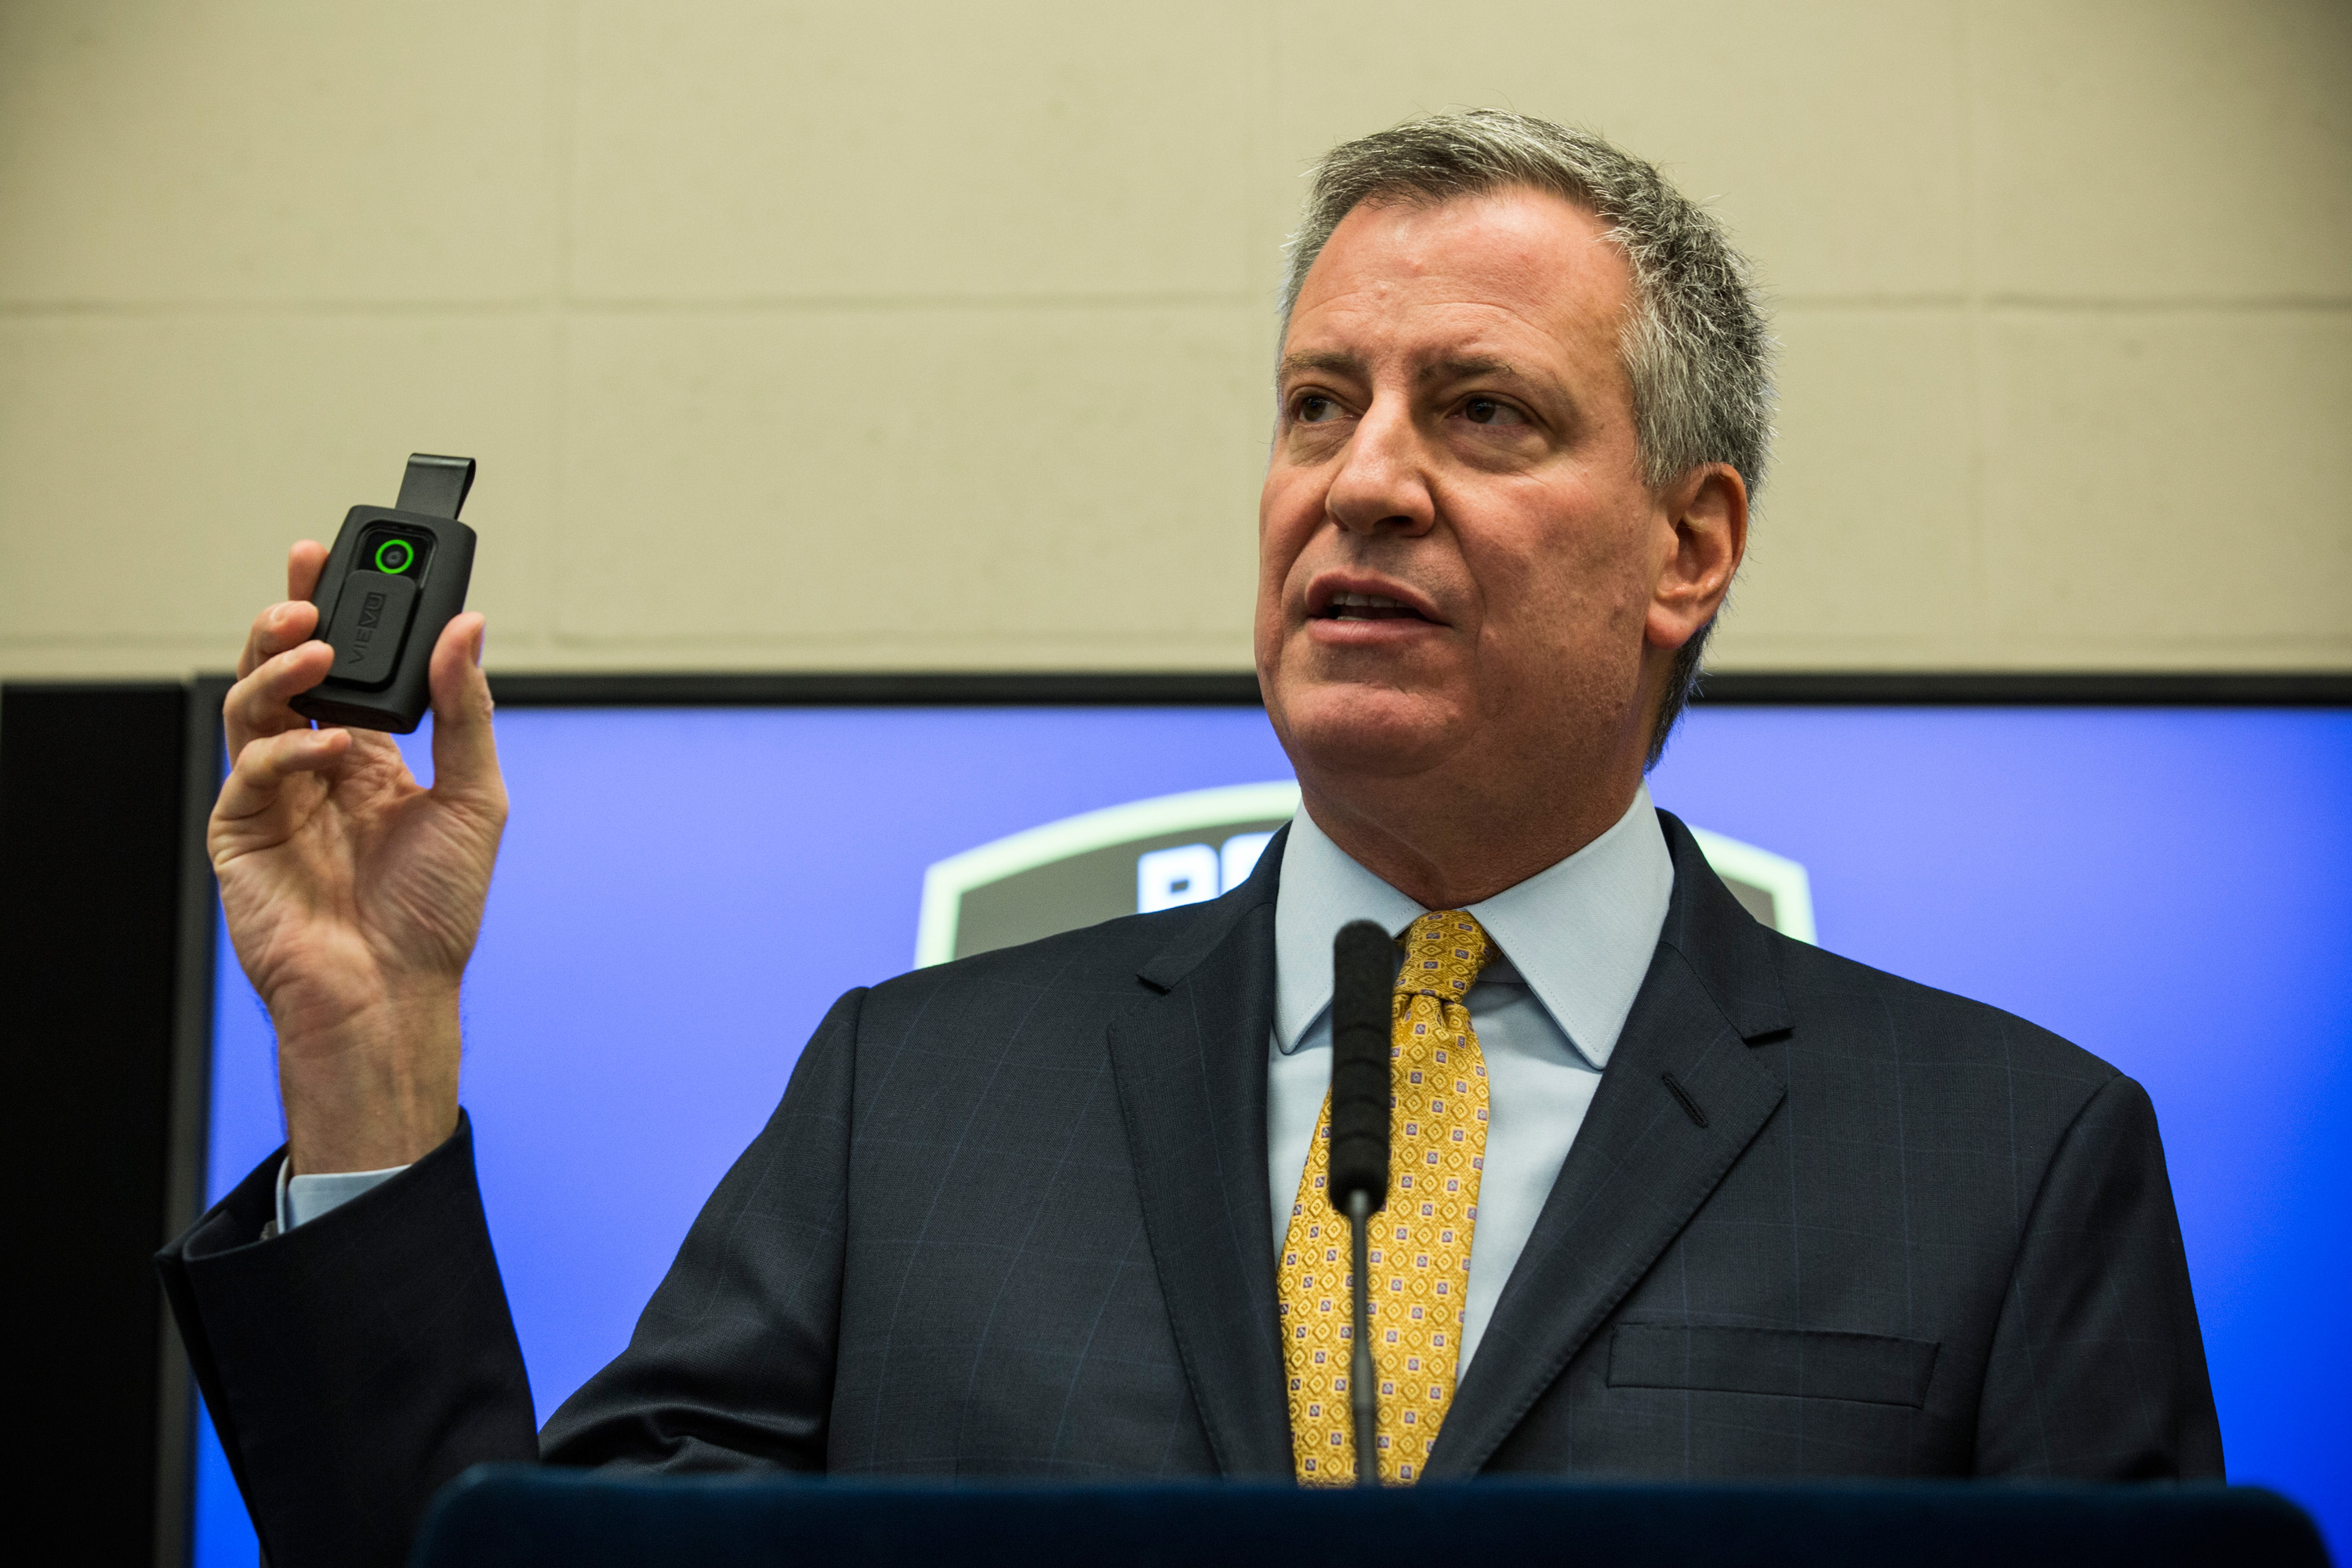 Mayor Bill de Blasio holds up a body camera at a press conference last December. (Photo by Andrew Burton/Getty Images)